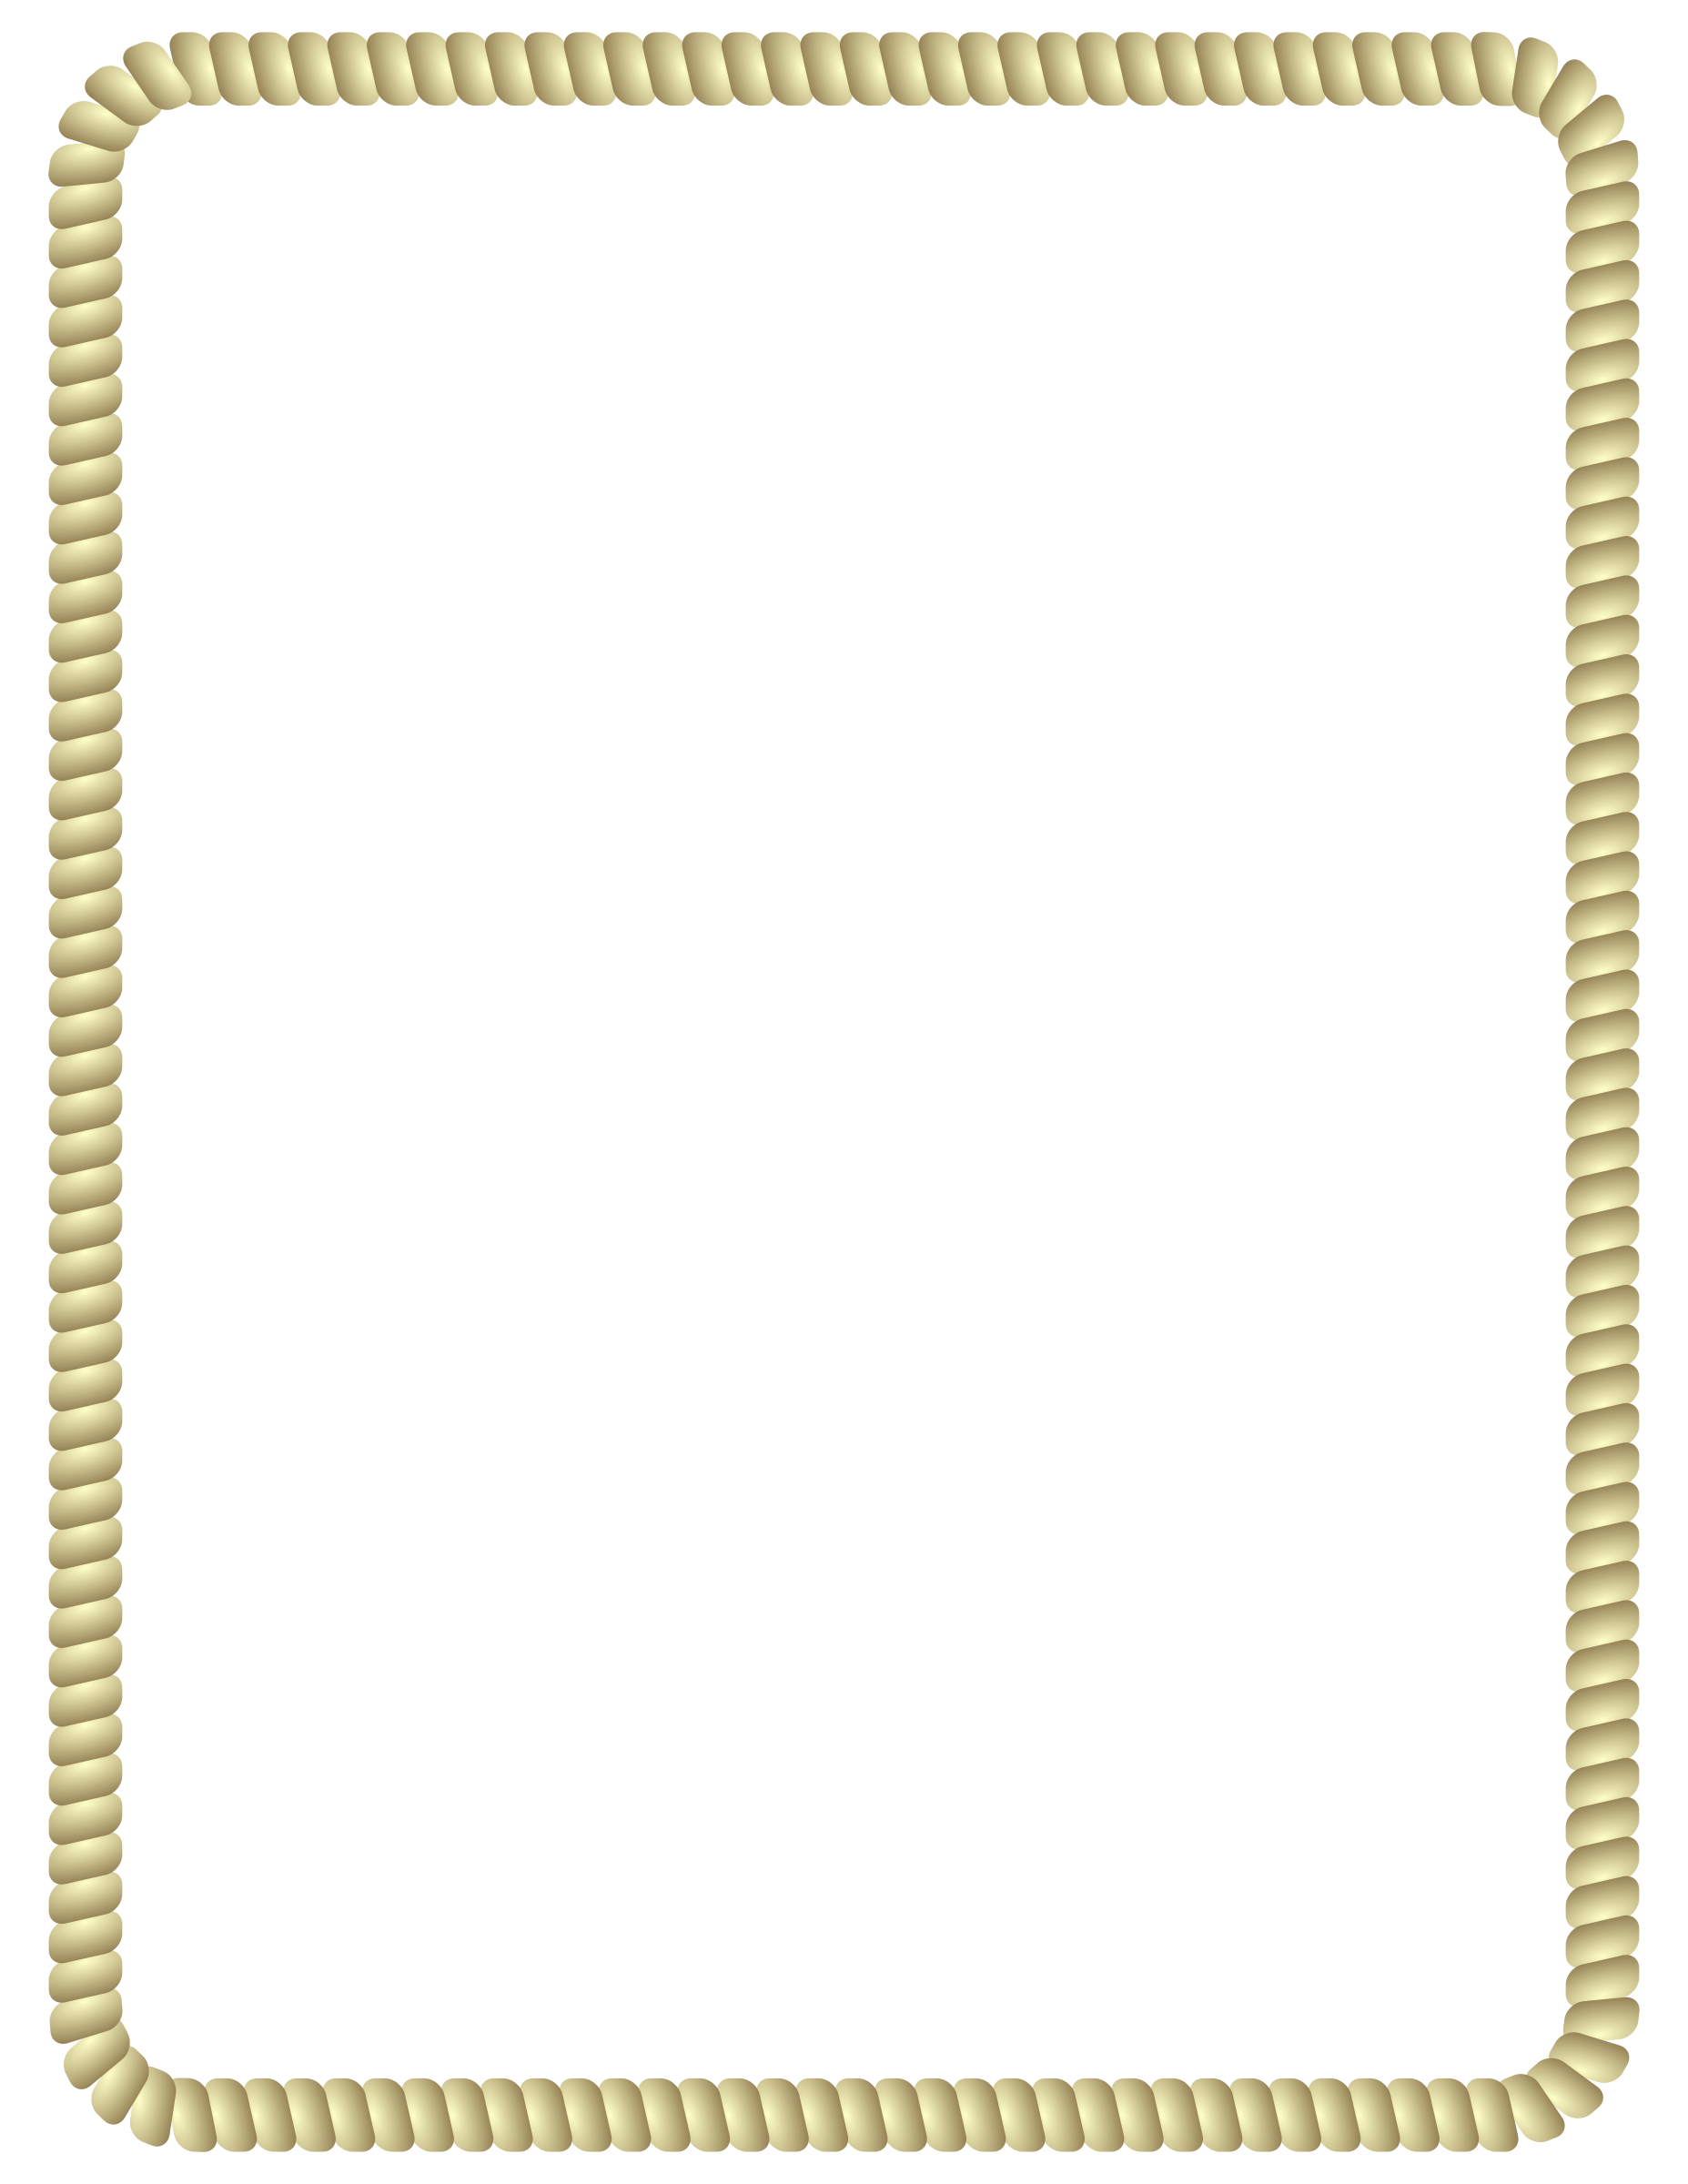 Rope border png. Collection of clipart